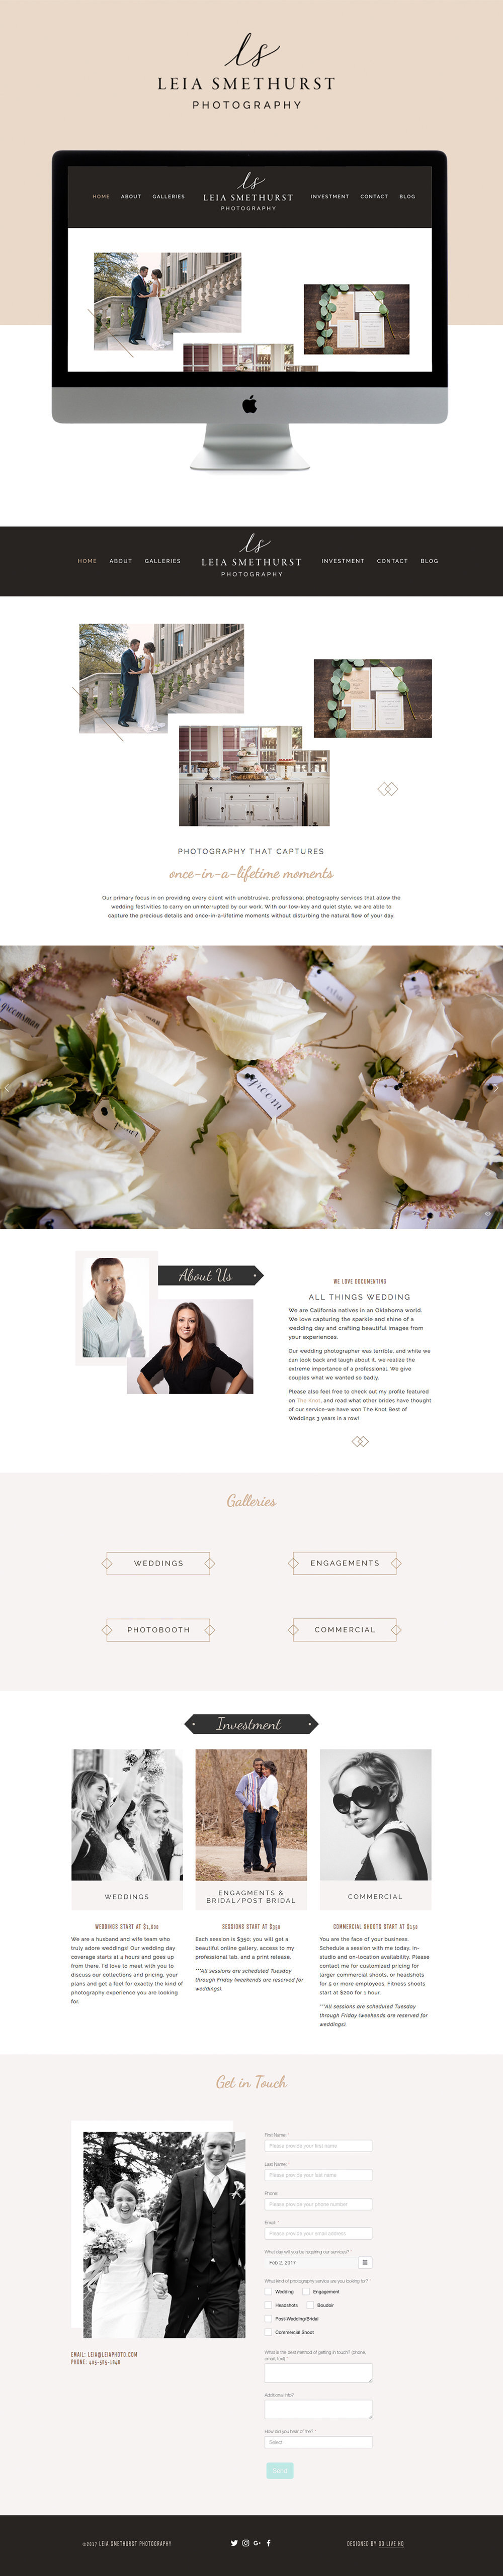 clean,+simple,+hints+of+rustic+tones+squarespace+design+_+designed+by_+golivehq.jpg